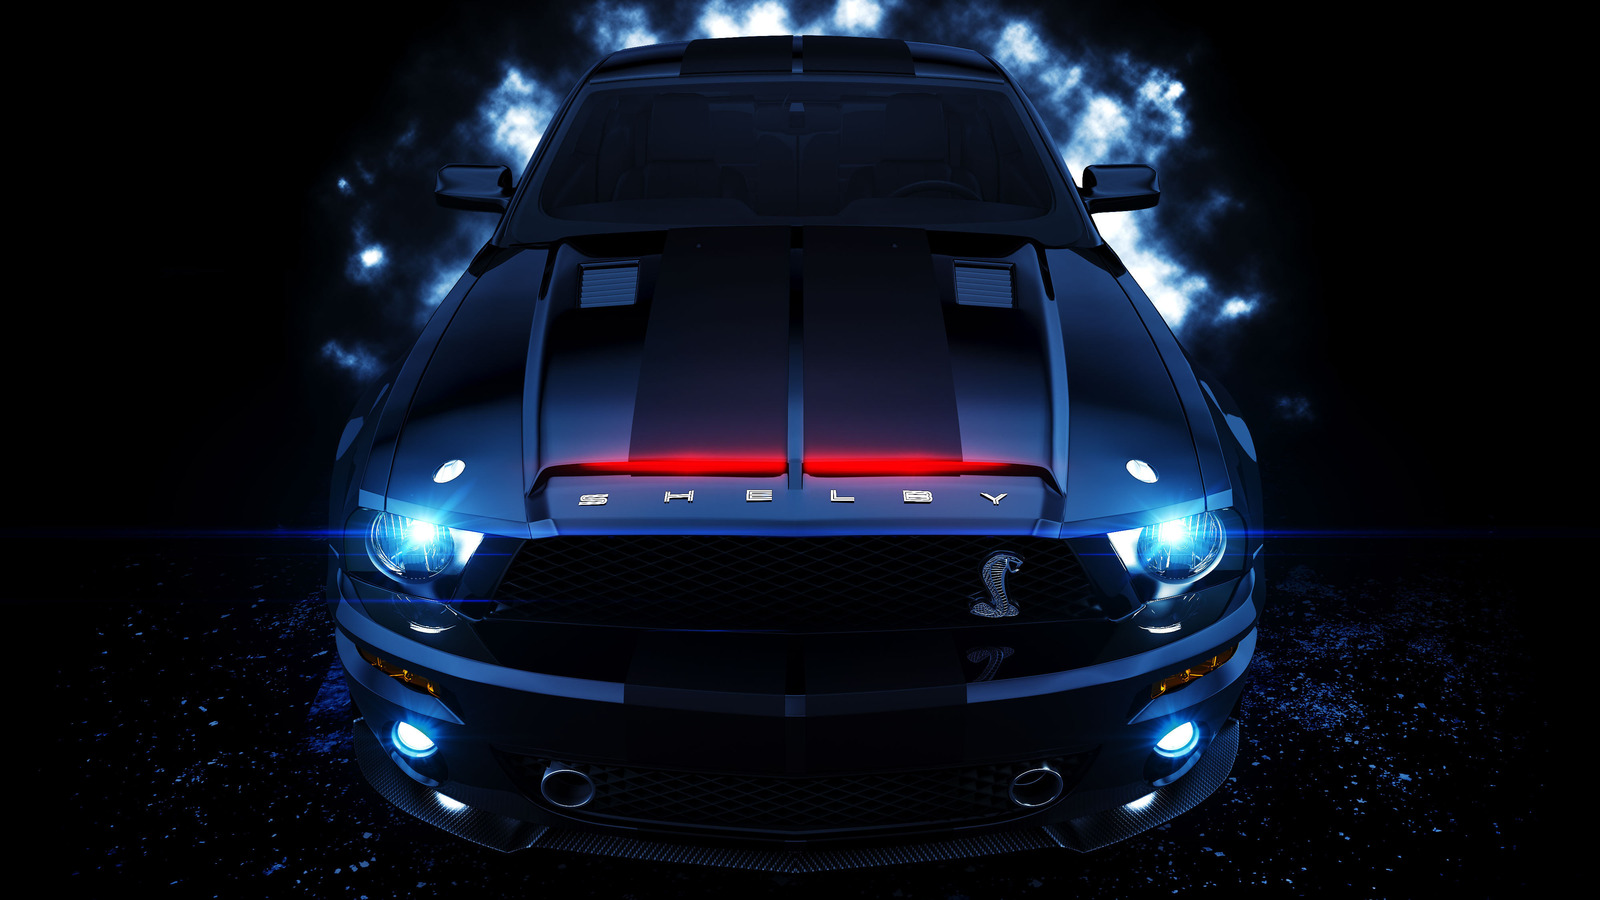 Mechanical Blue Ford Mustang Shelby GT500 Car Picture HD Wallpaper 1600x900